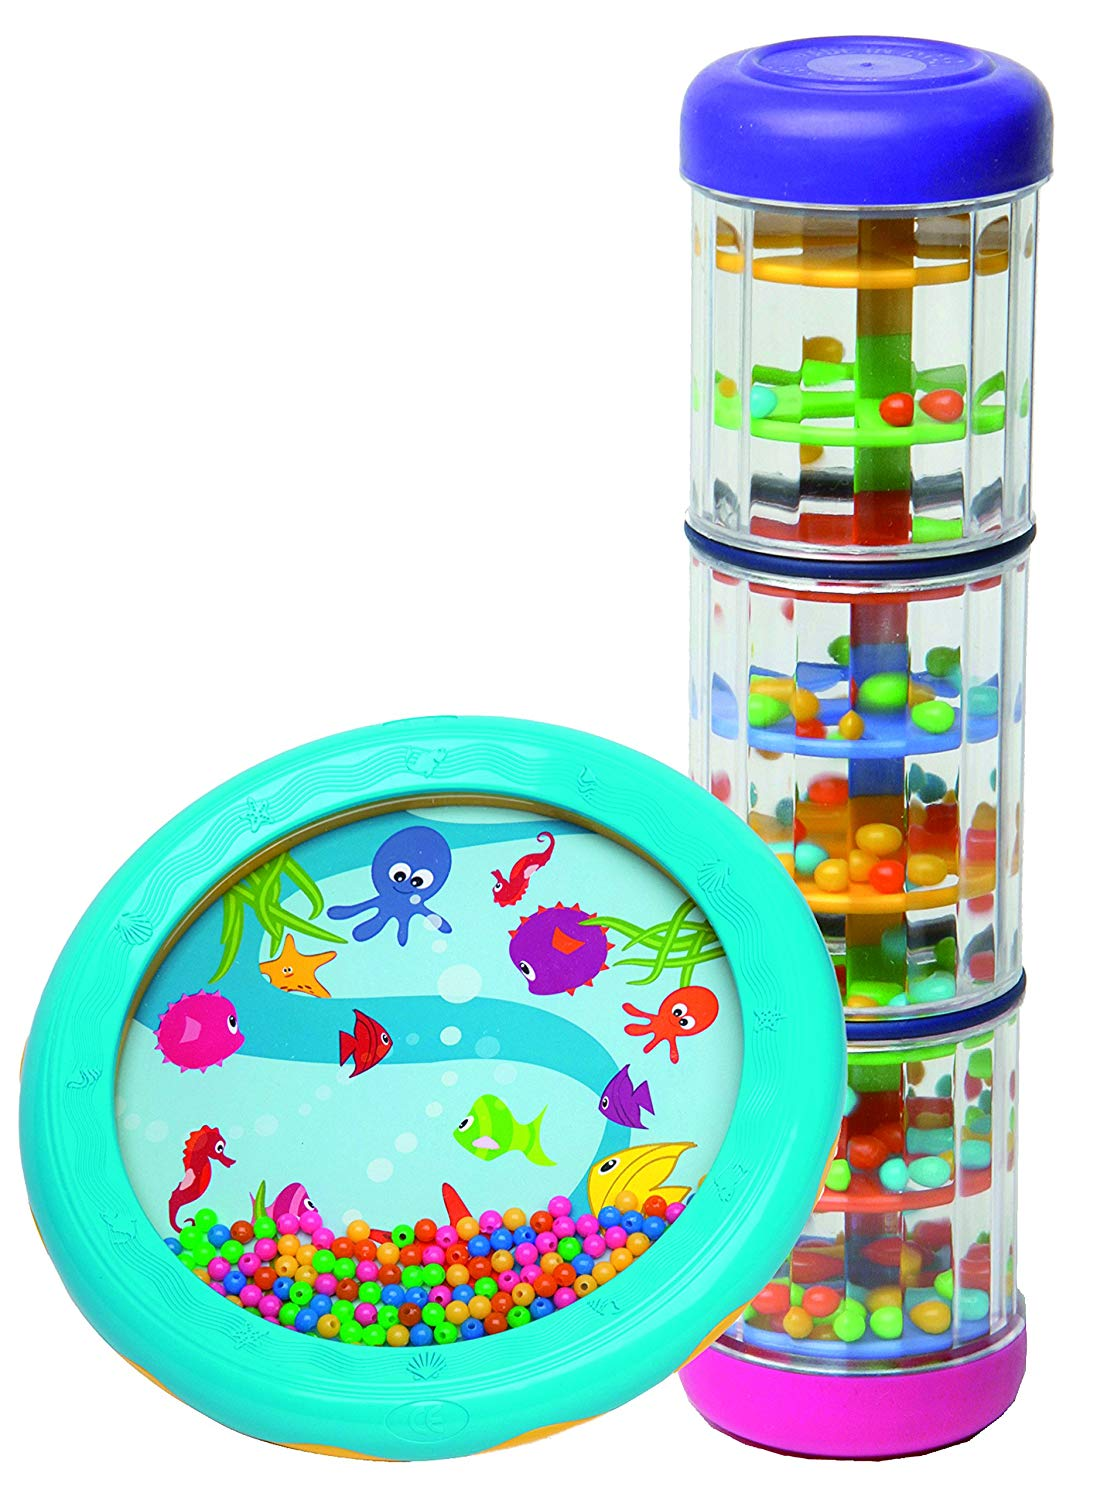 Toys For Adults With Disabilities : Shake and roll musical set sensory toys special